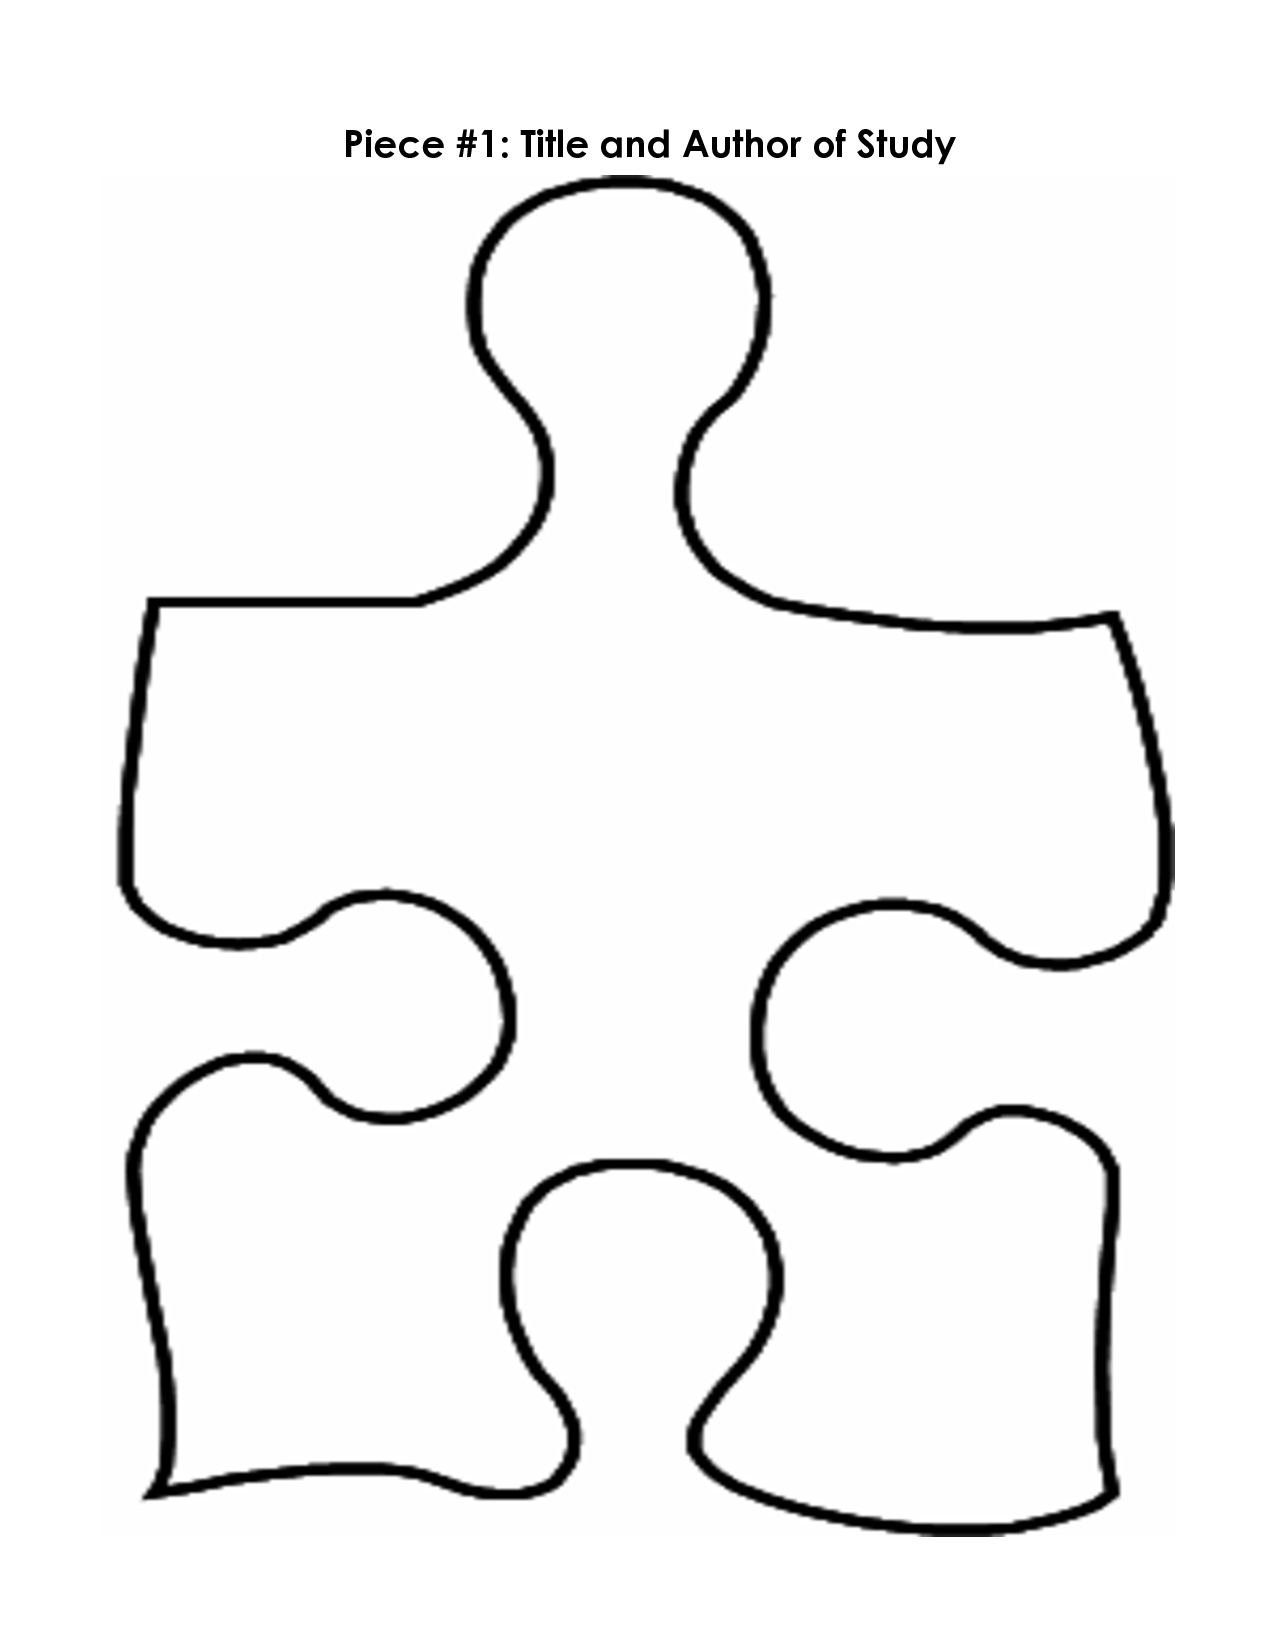 Free Puzzle Pieces Template, Download Free Clip Art, Free Clip Art - Printable 3 Puzzle Pieces